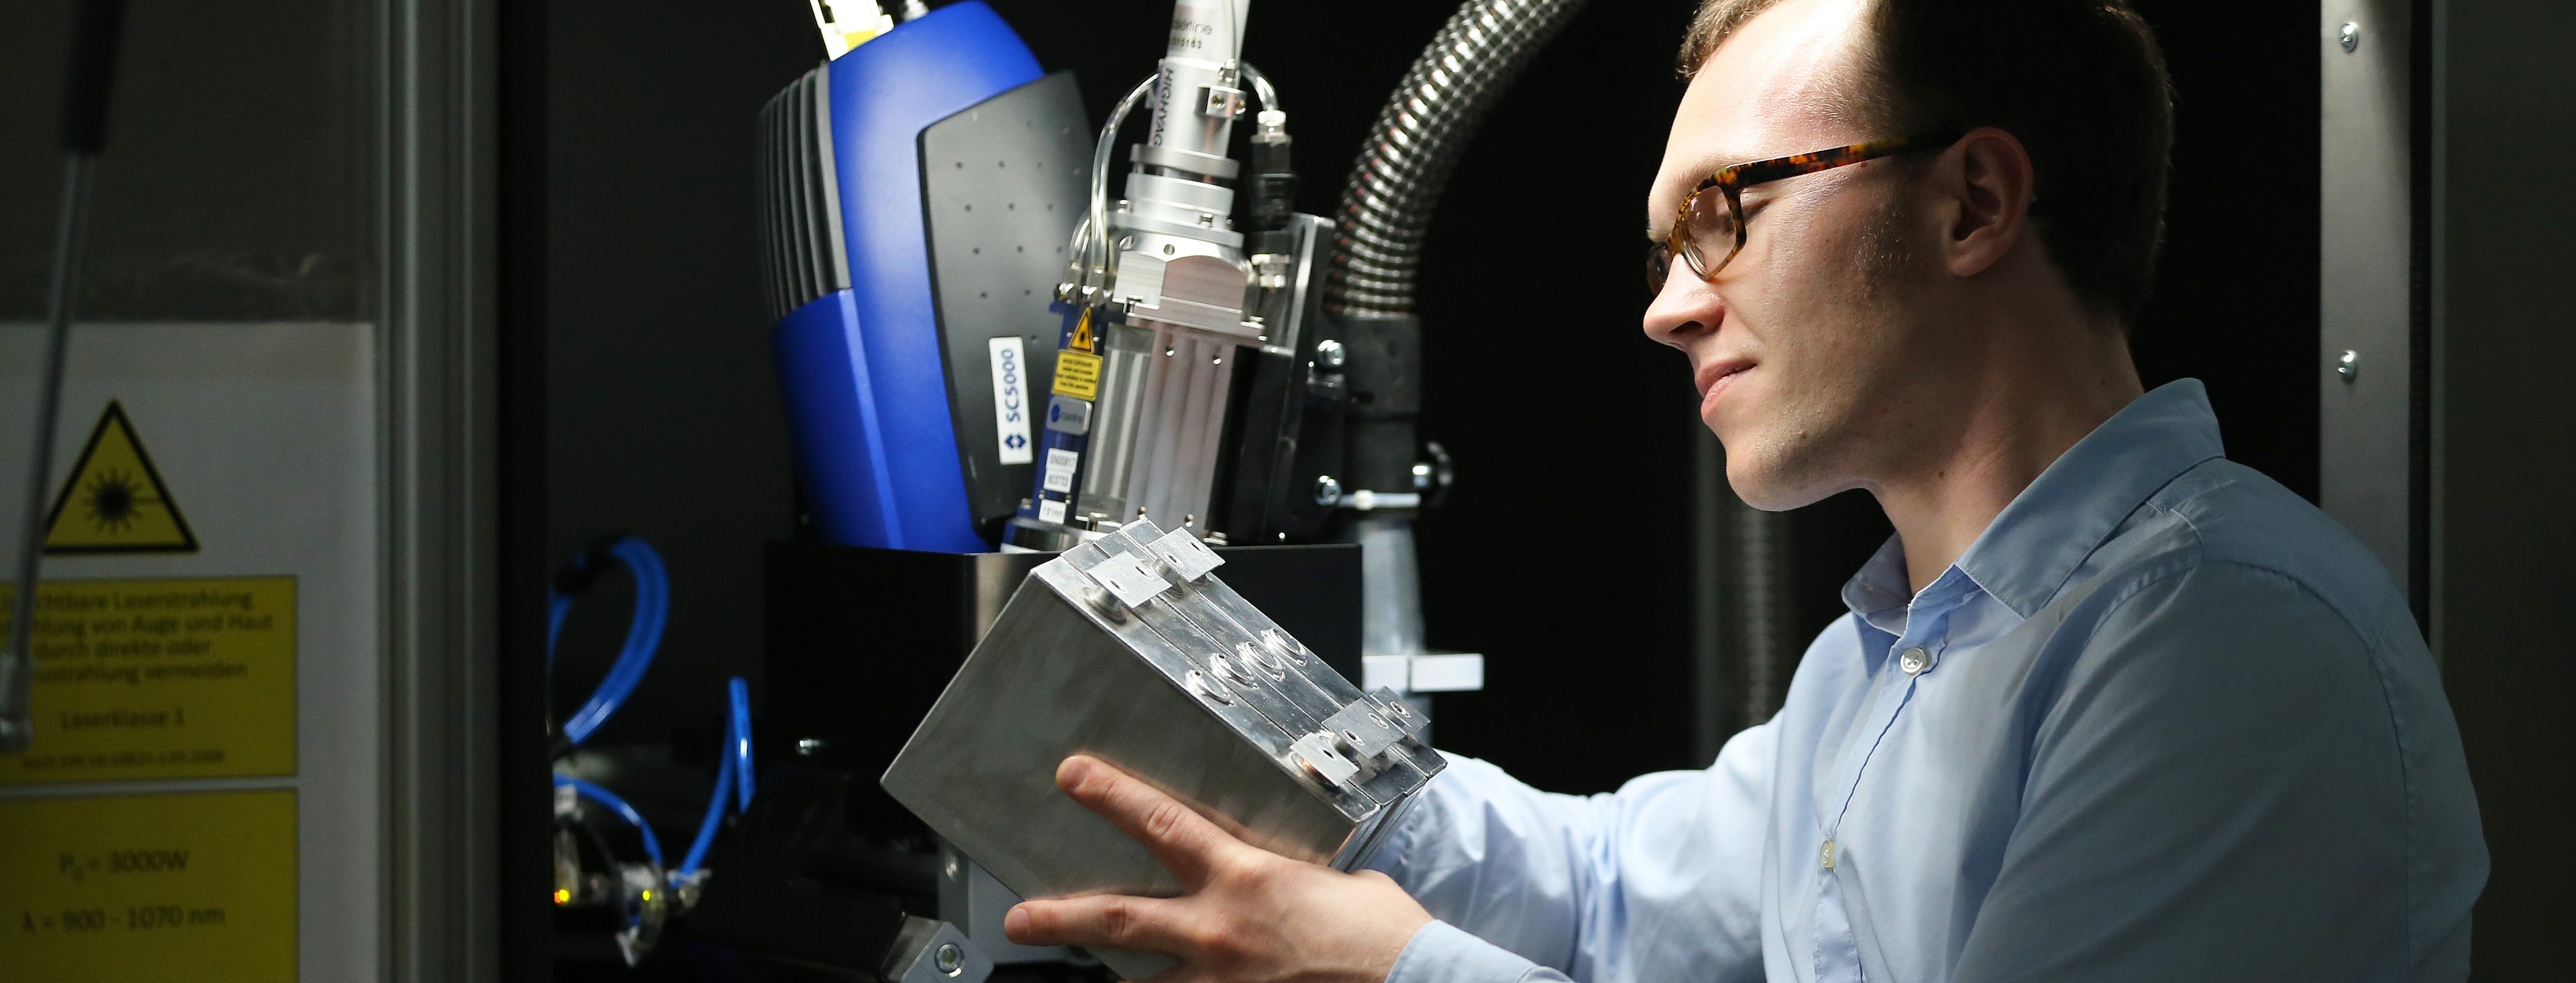 Thyssenkrupp build accessories for battery production